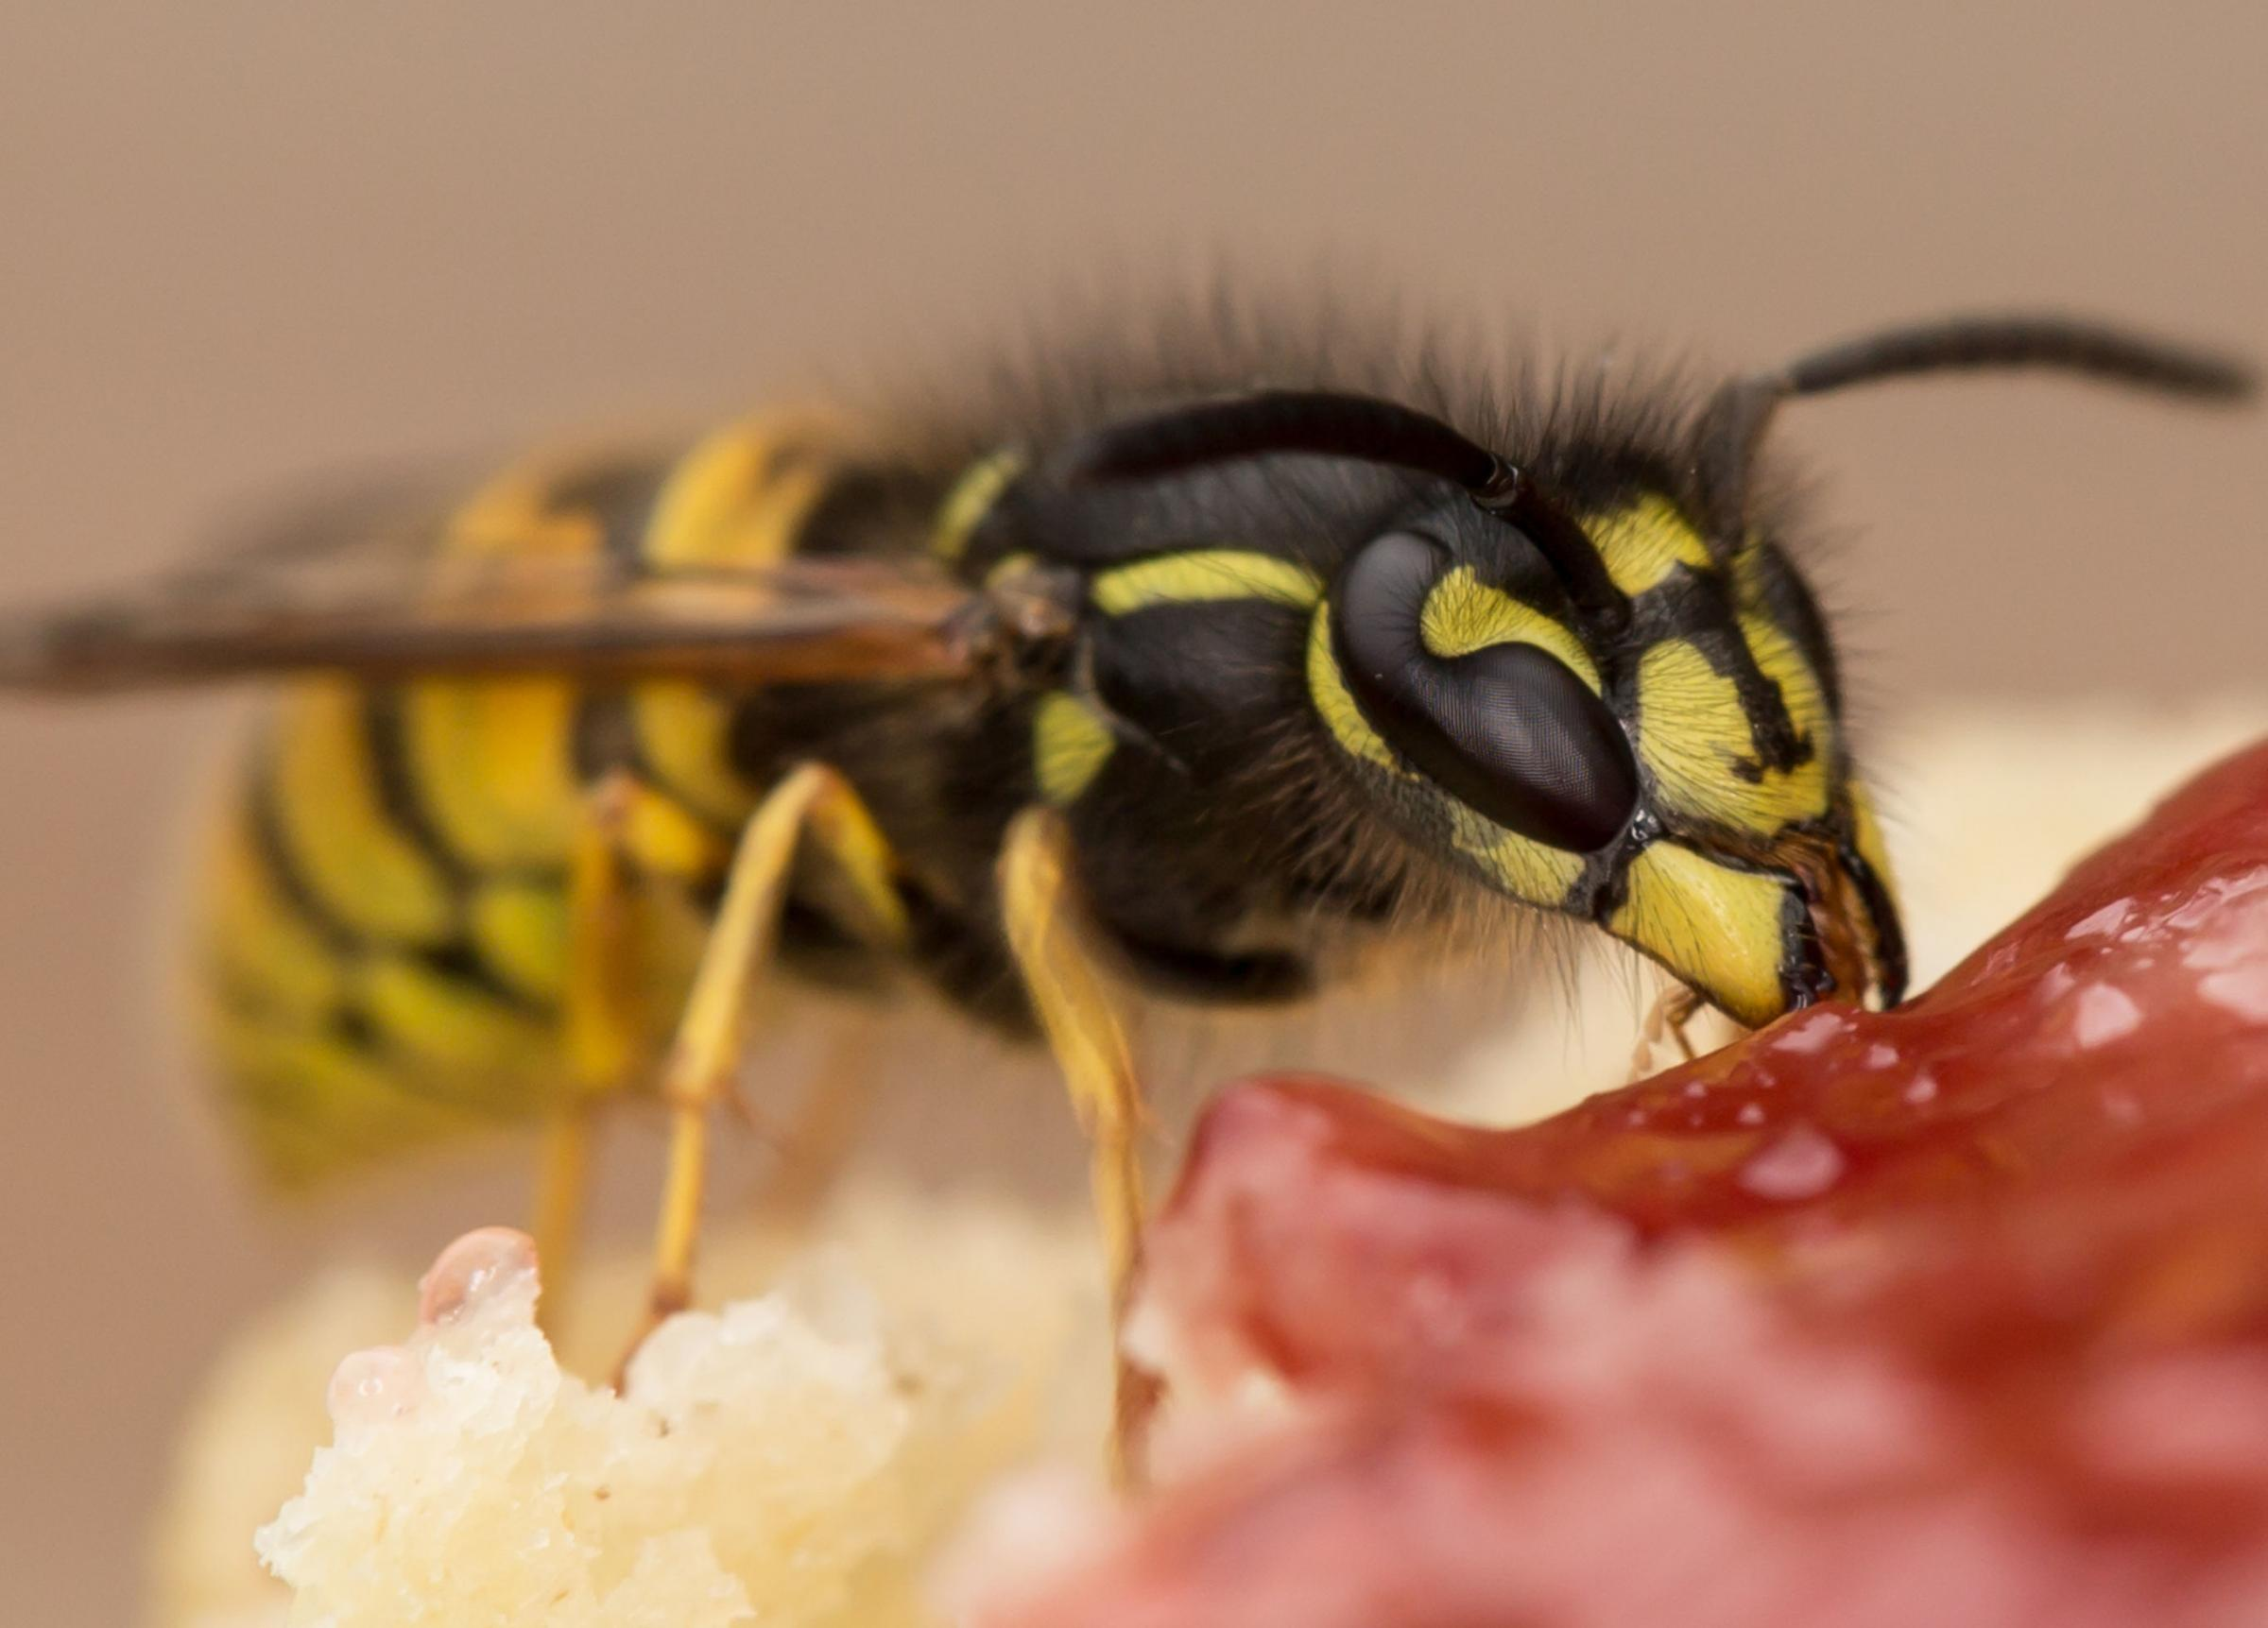 A wasp sting led to a man's death in Denbighshire.